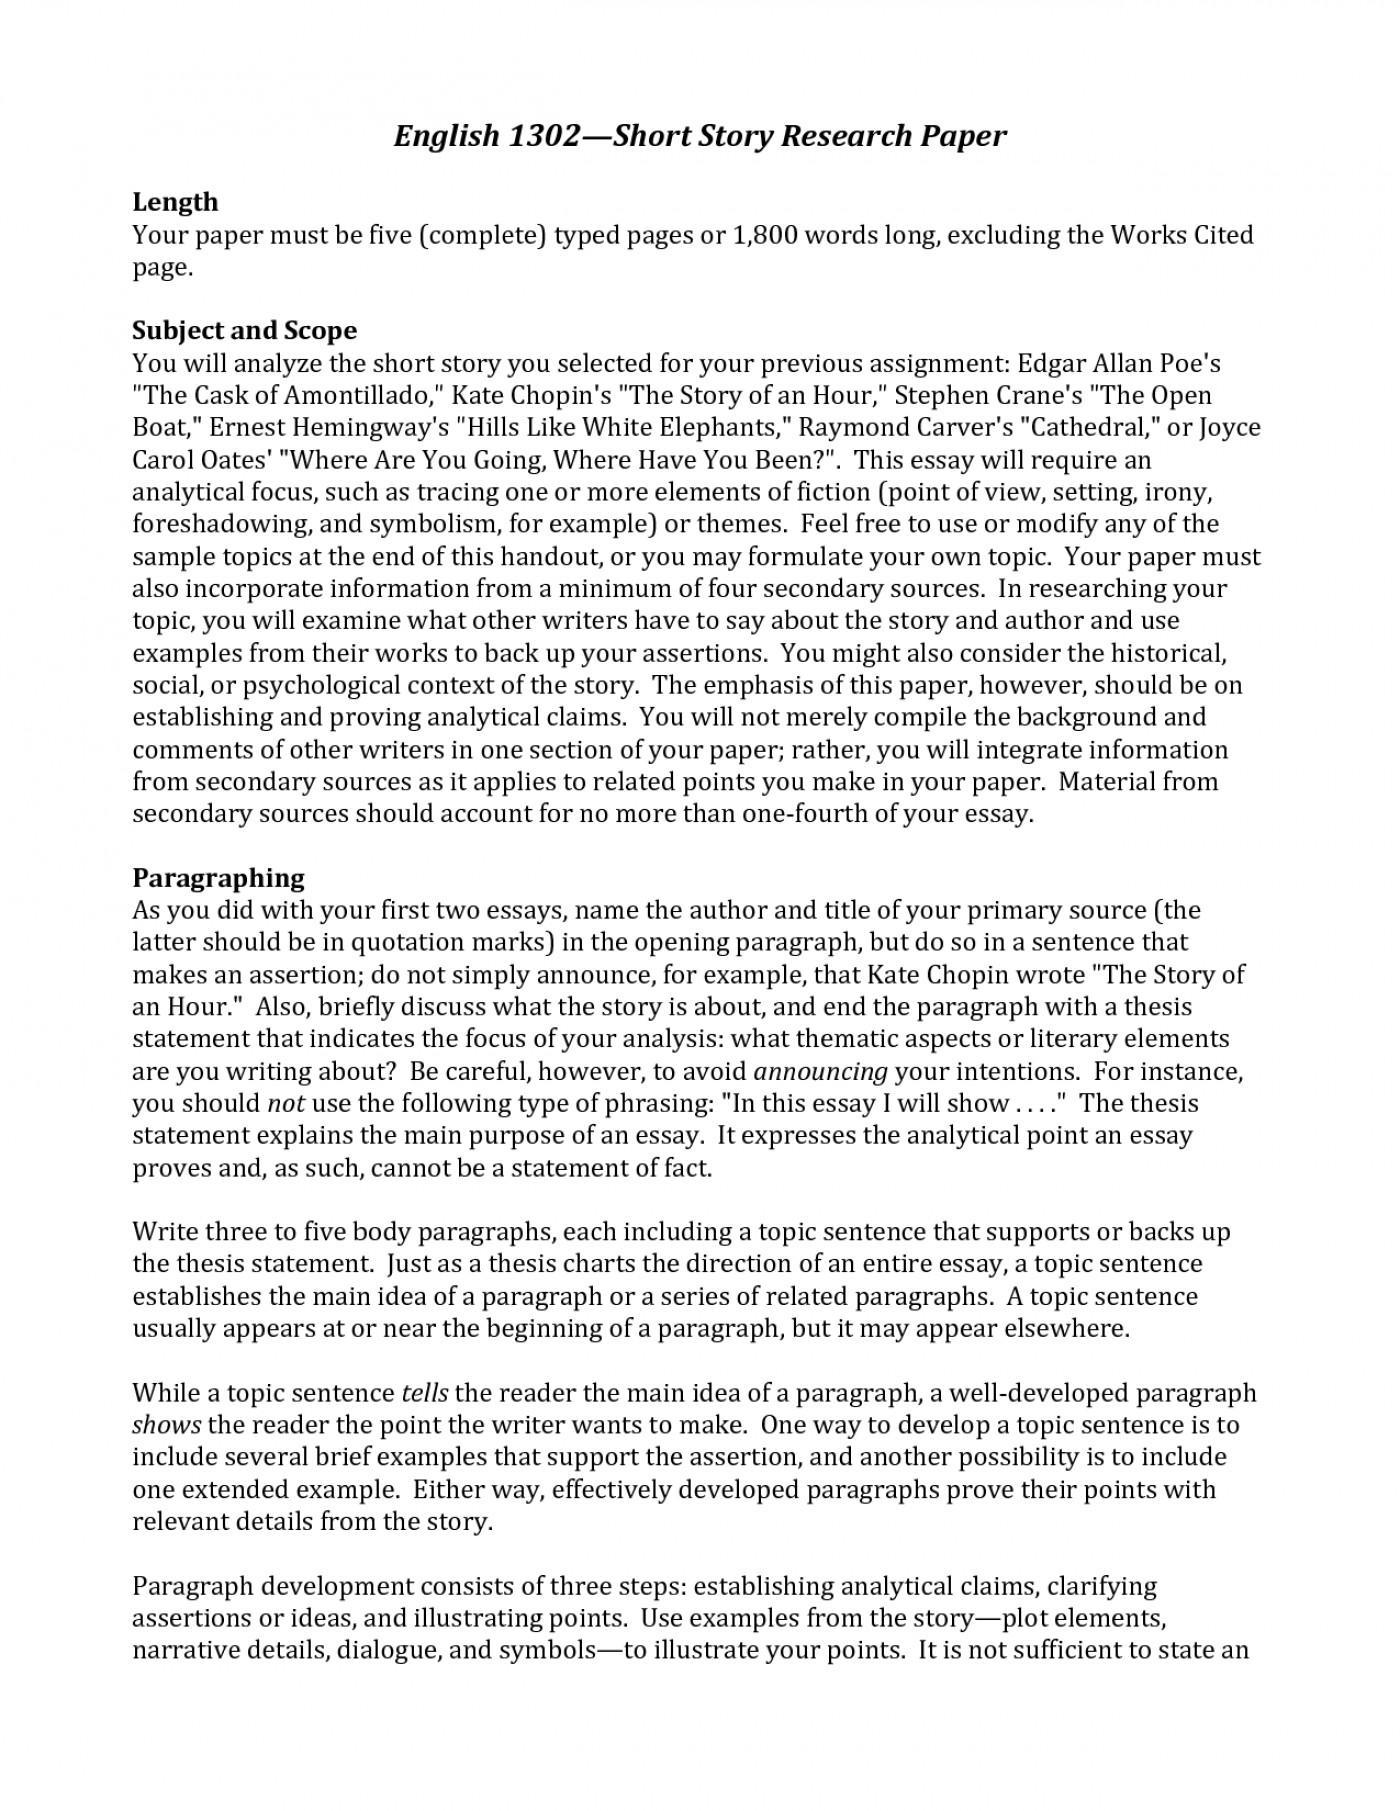 002 Ideas For Research Fascinating Paper Papers In Computer Science Middle School Topic High 1400